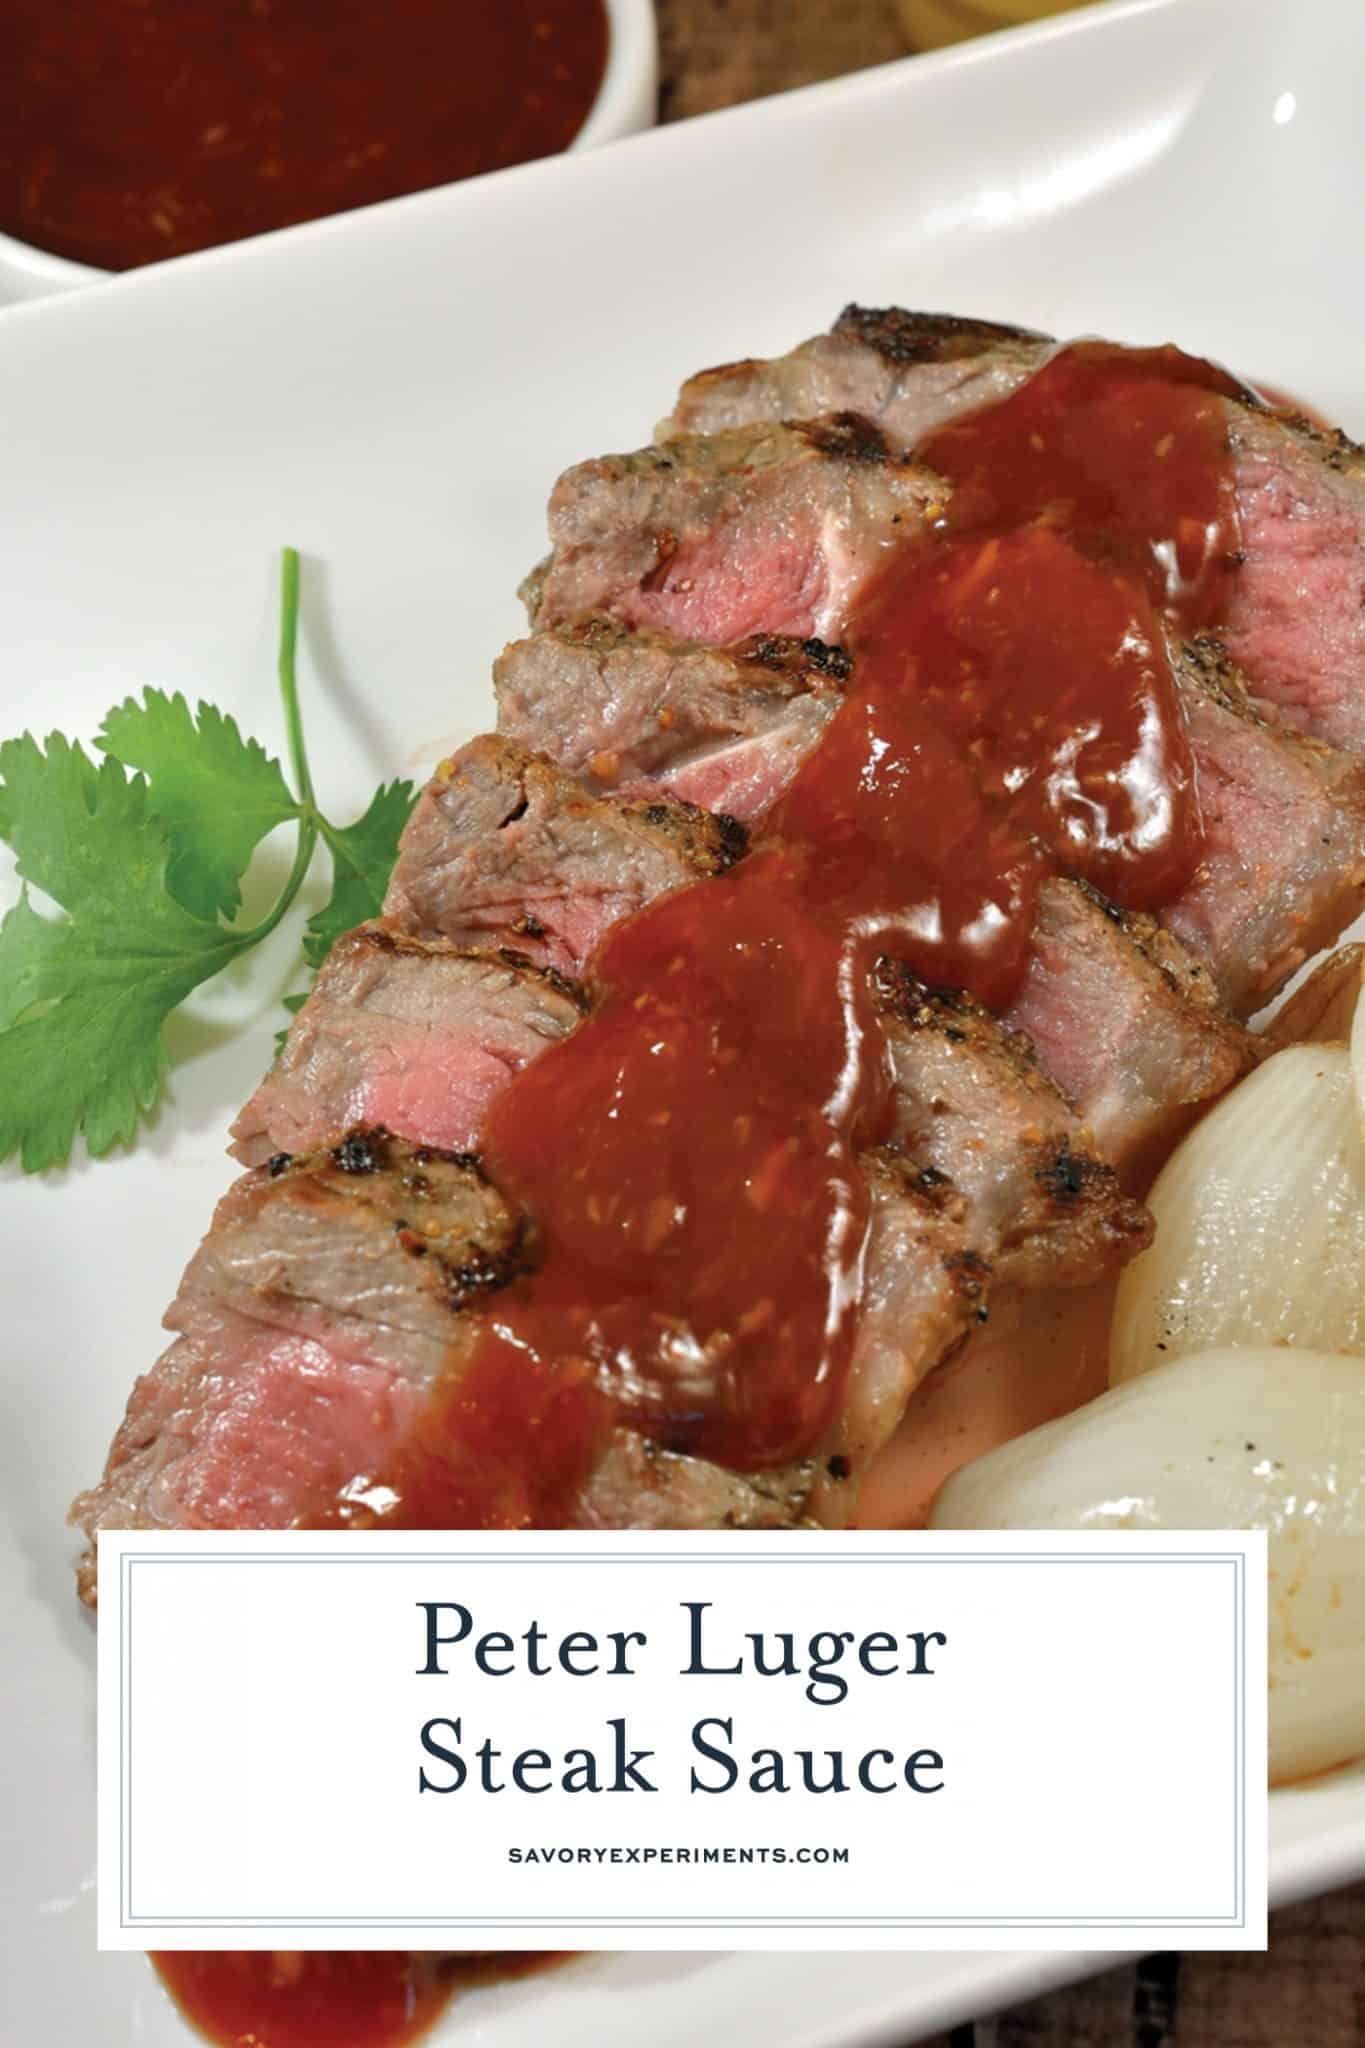 The best homemade steak sauce is my Copycat Peter Luger Steak Sauce! Sweet and spicy, rich and decadent, it complements even the best piece of meat and even chicken!#homemadesteaksauce #steaksauce www.savoryexperiments.com